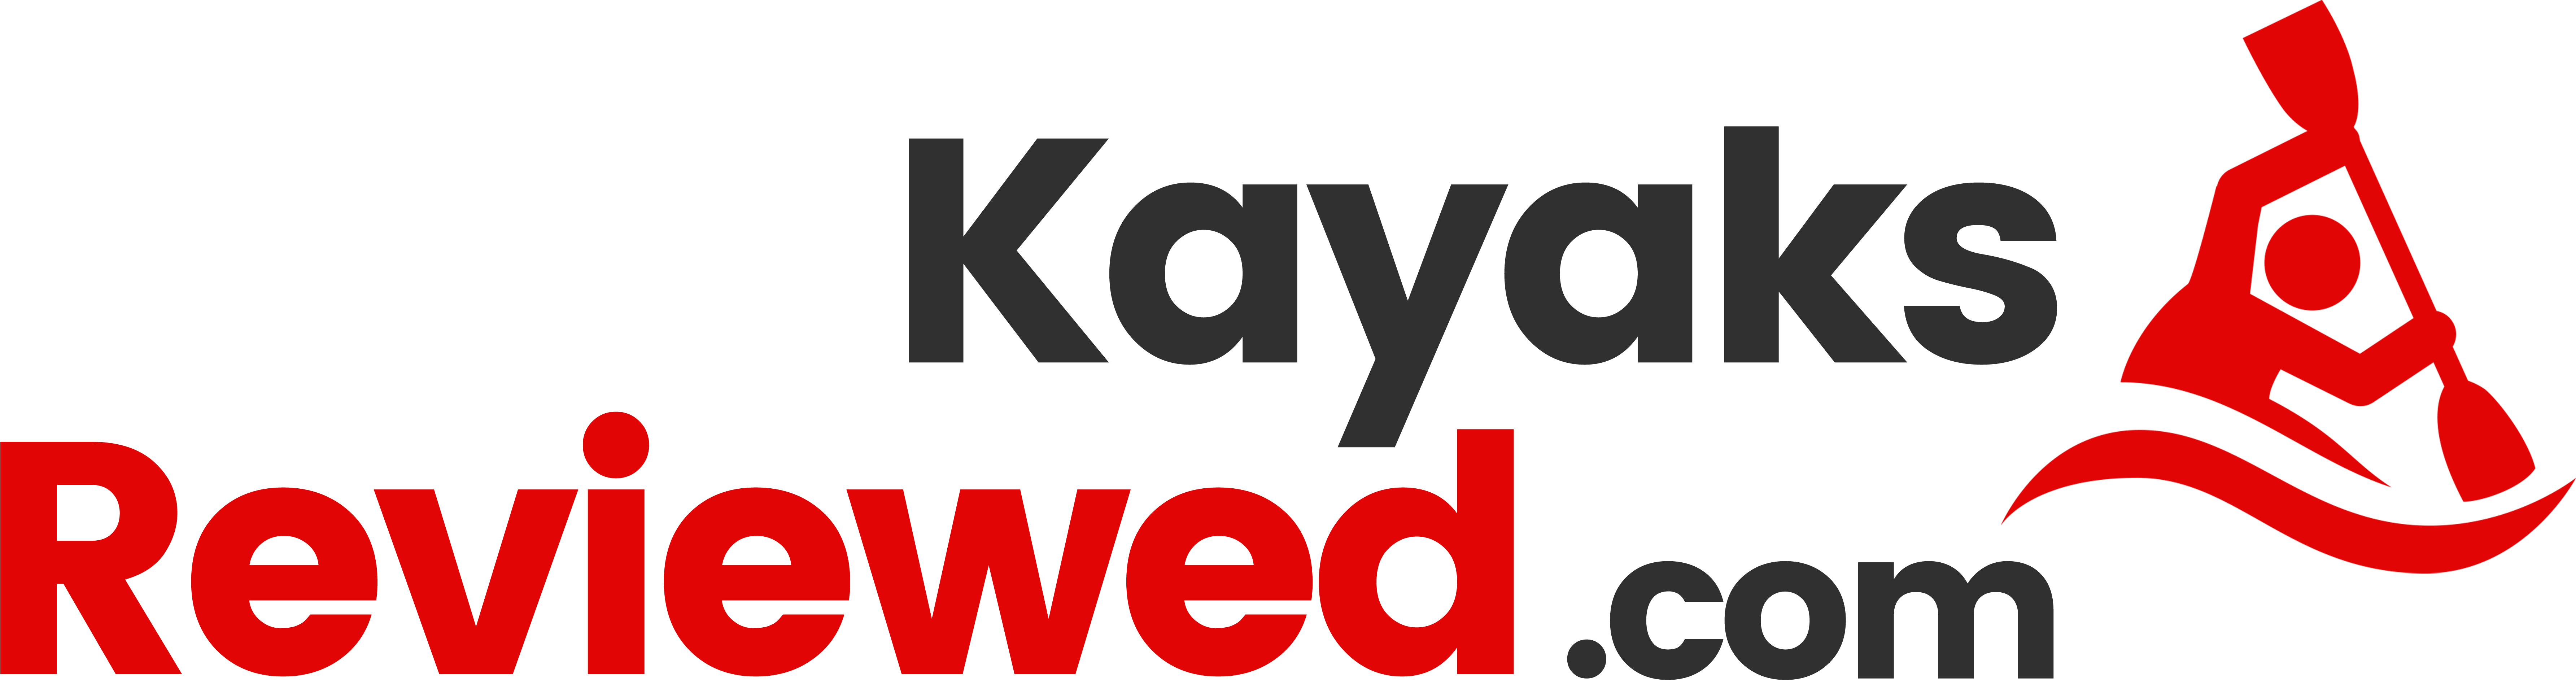 KayaksReviewed.com